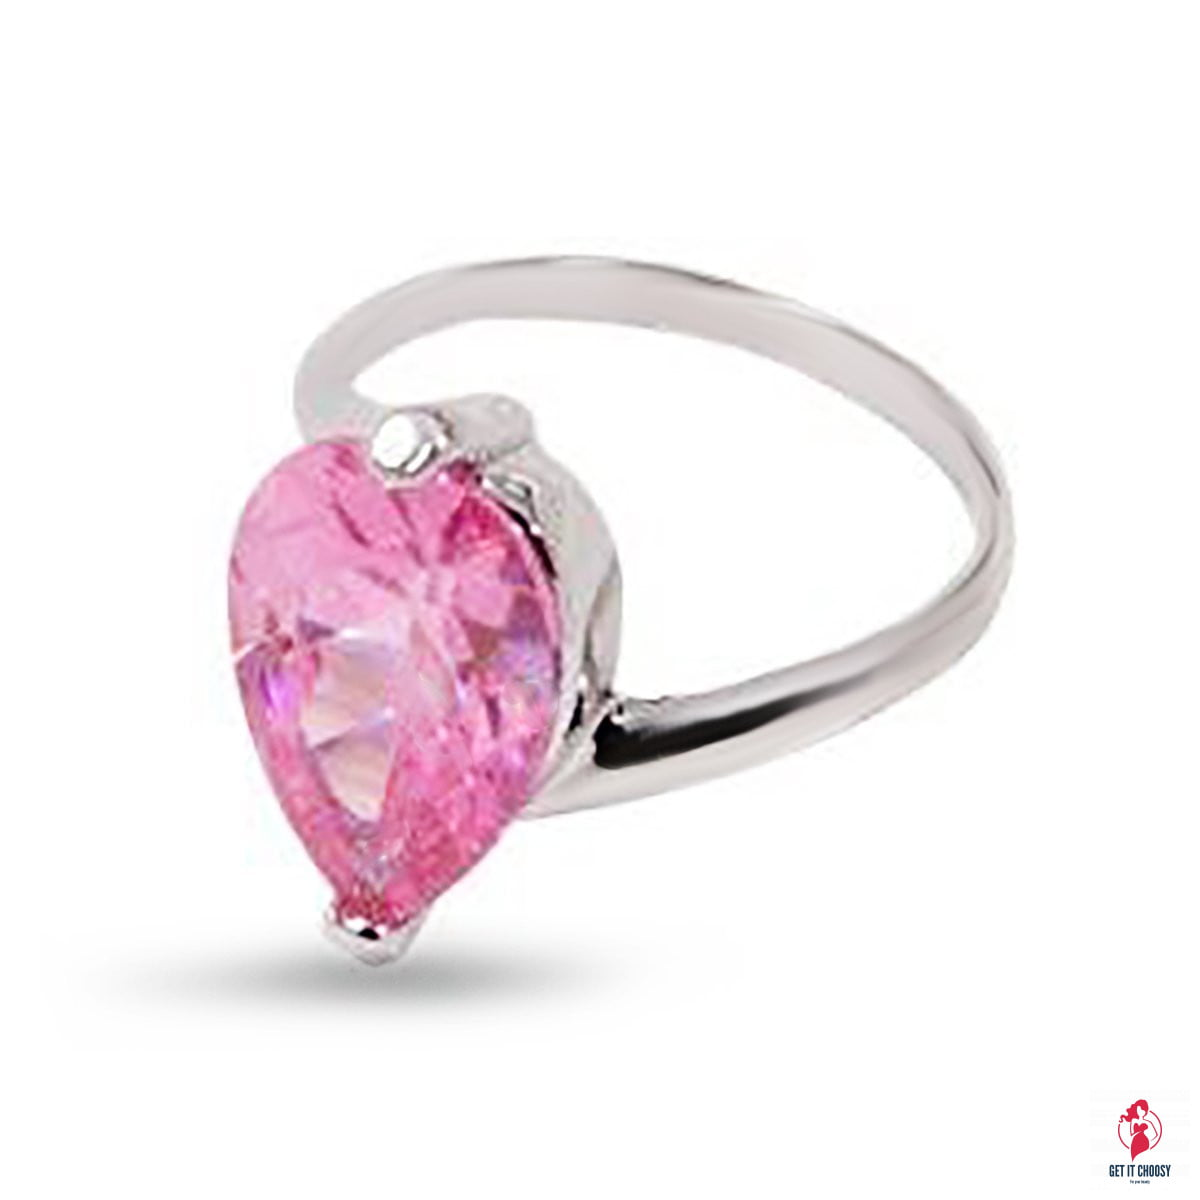 Large Pink Pear Shape Solitaire Cubic Zirconia by Getitchoosy